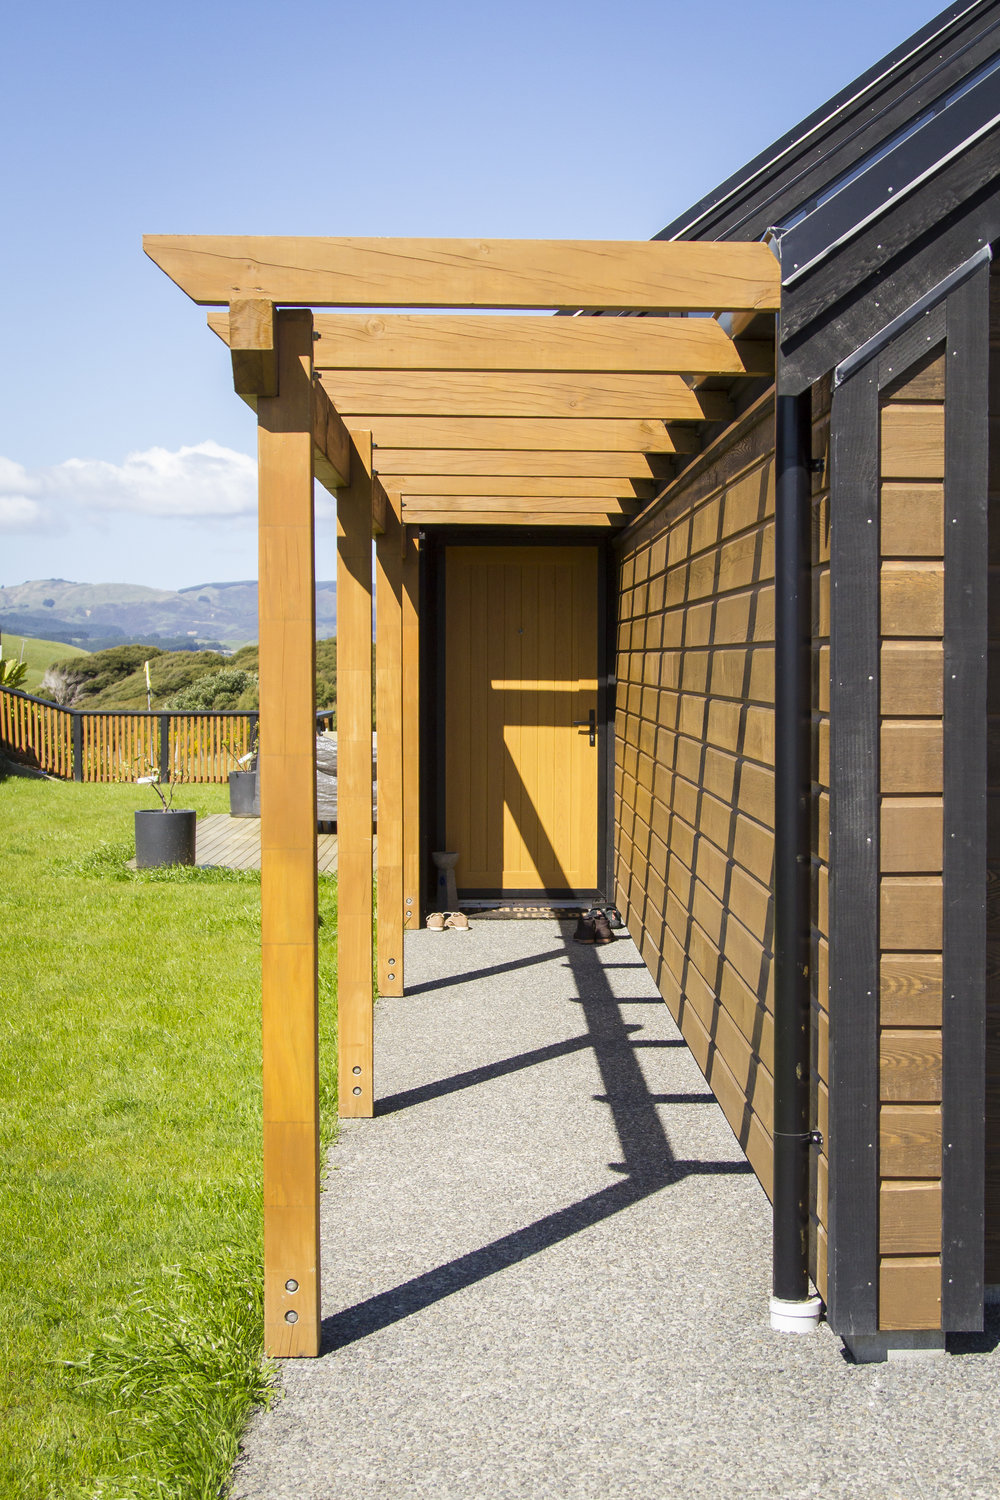 Entry  - Attached pergola to create walkway to set back entry